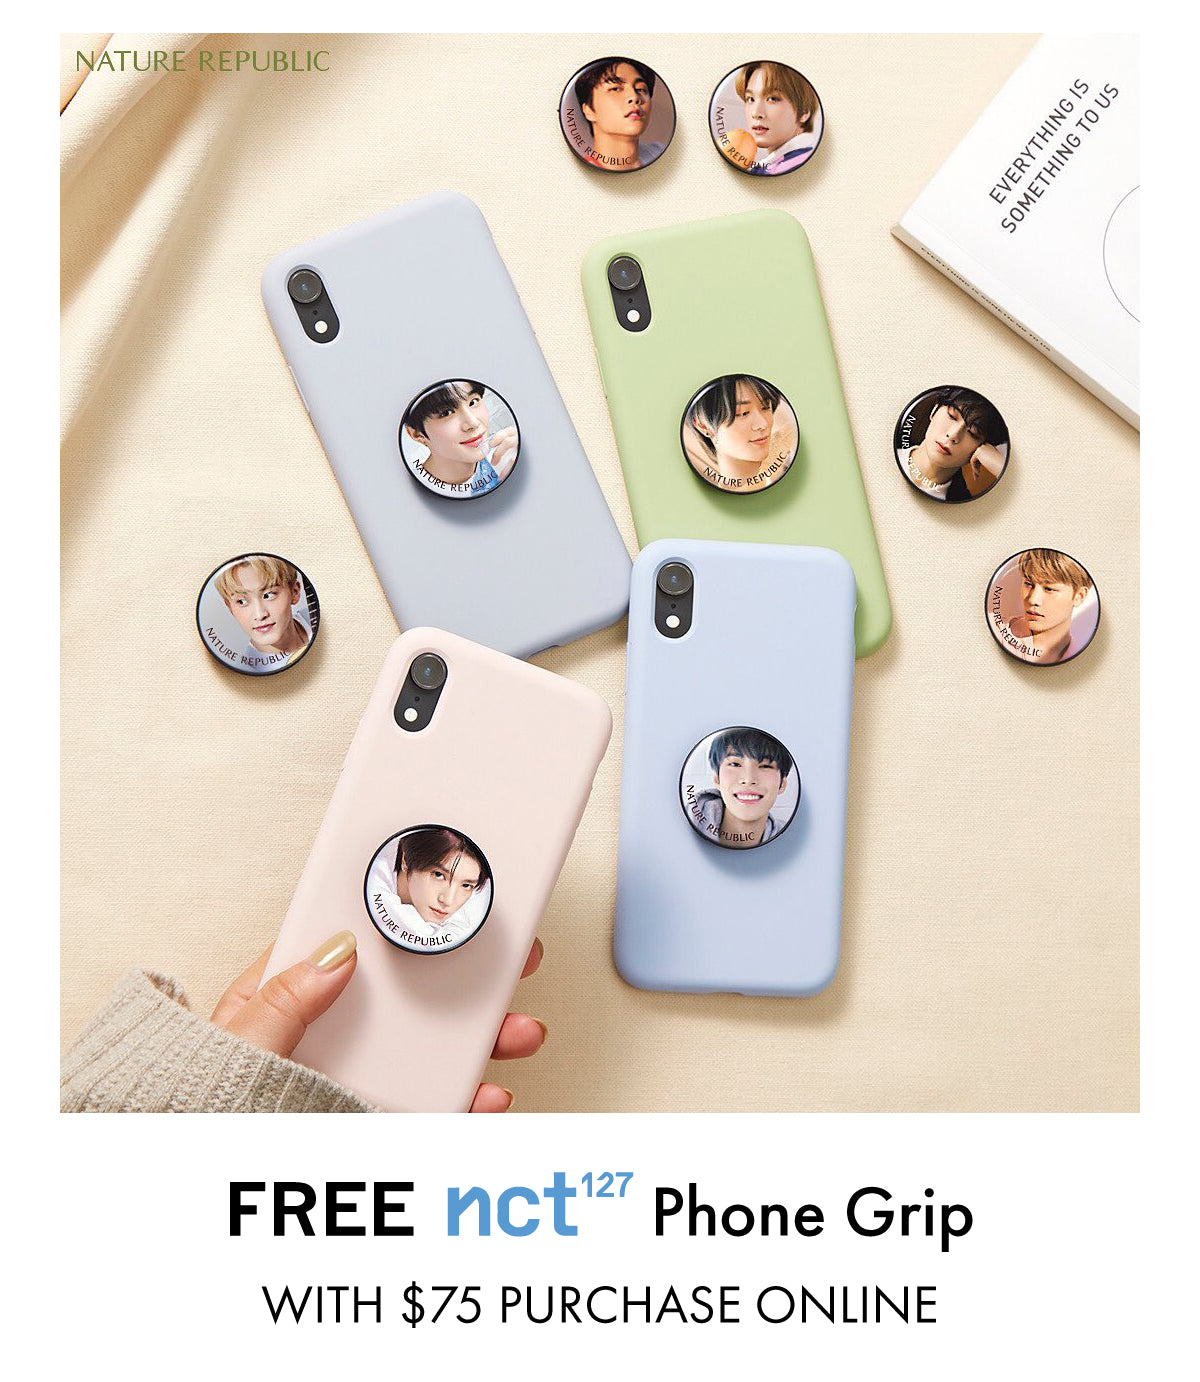 Free NCT127 phone grip with $75 purchase